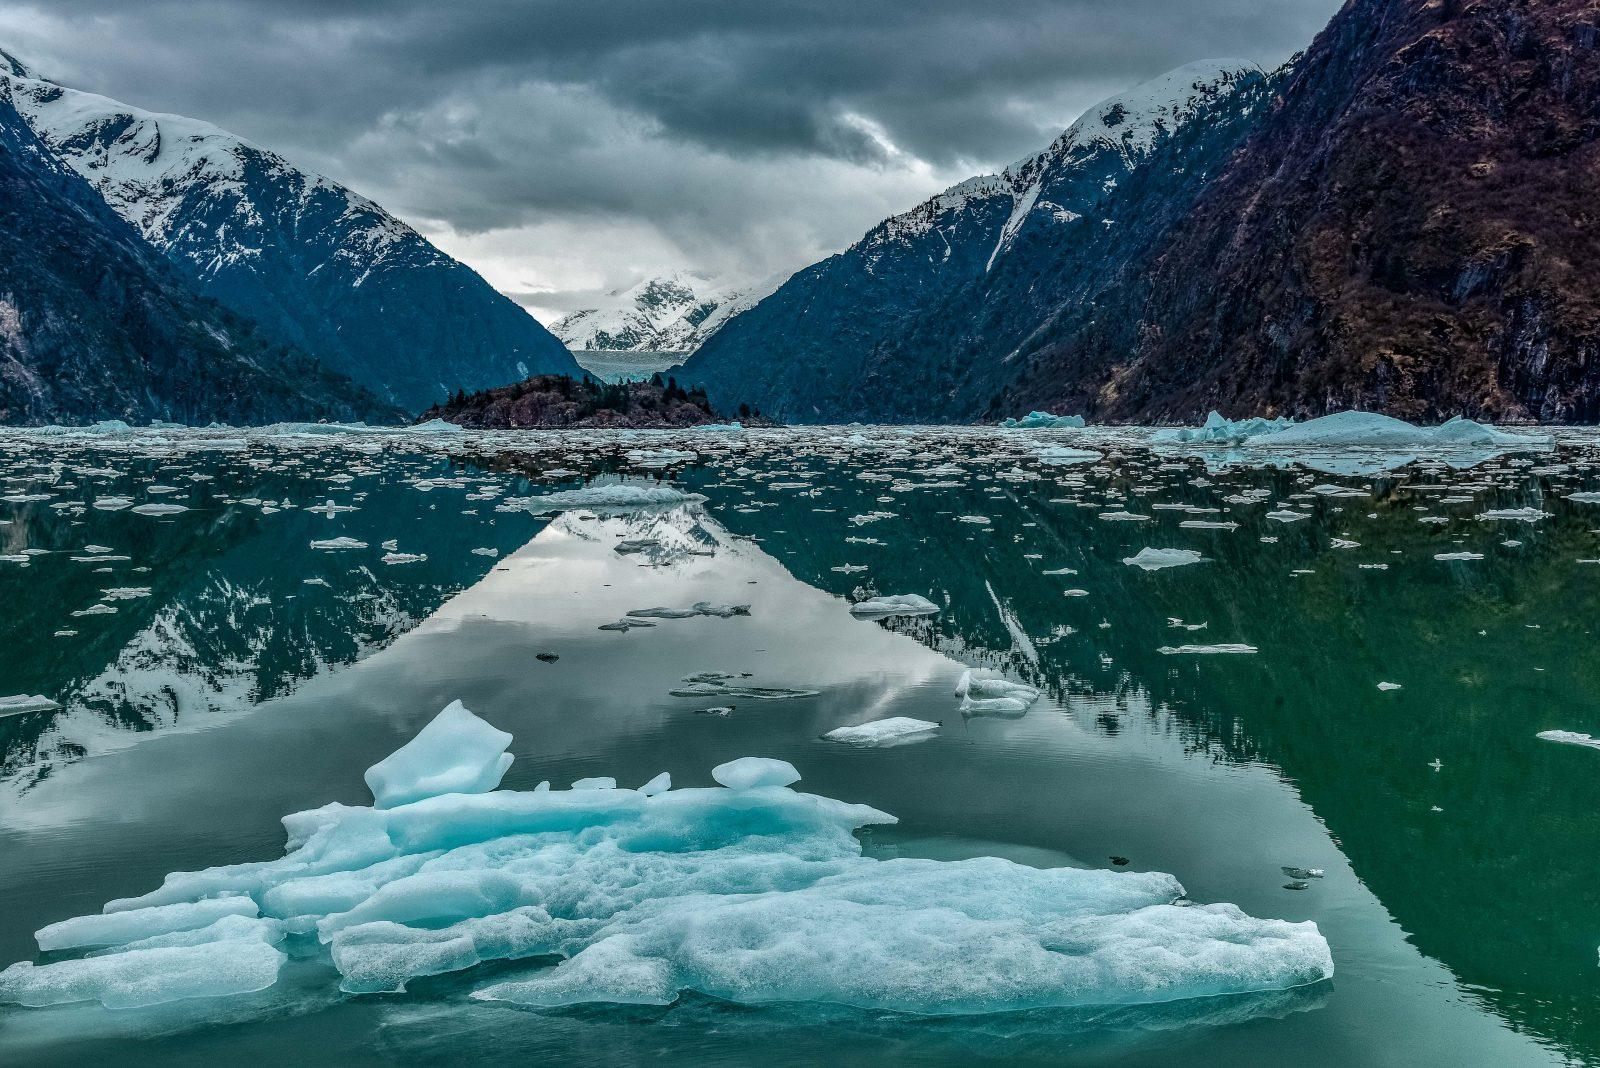 Visit this glacier before it is gone